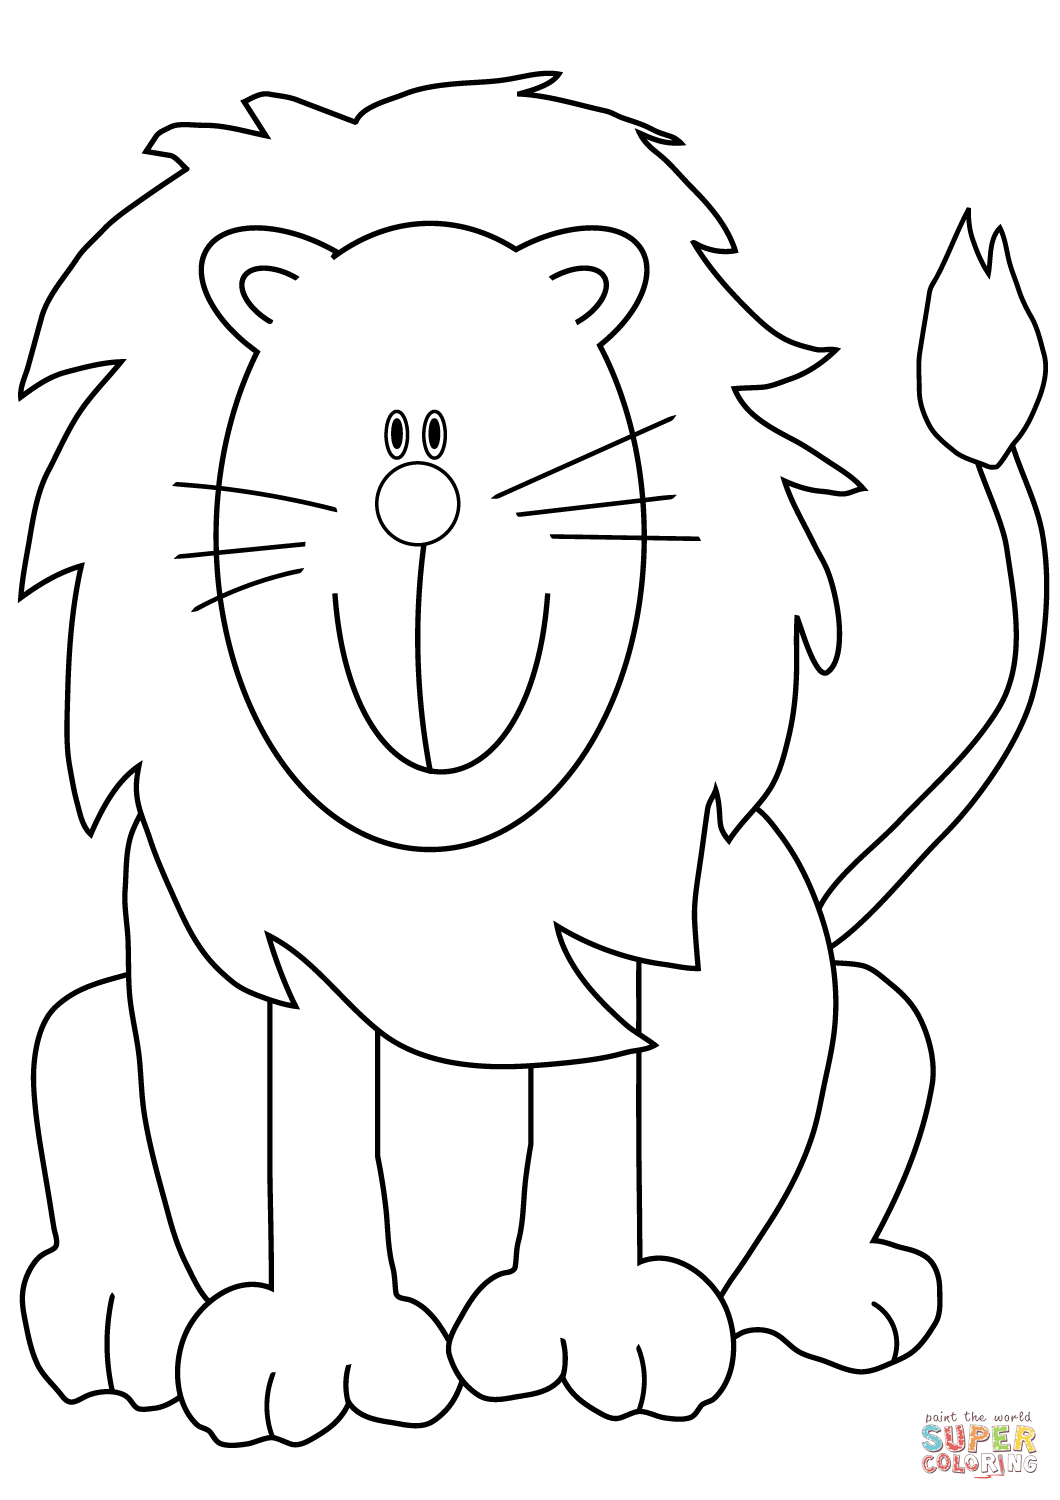 lion coloring image lion coloring pages clipart and other free printable lion image coloring